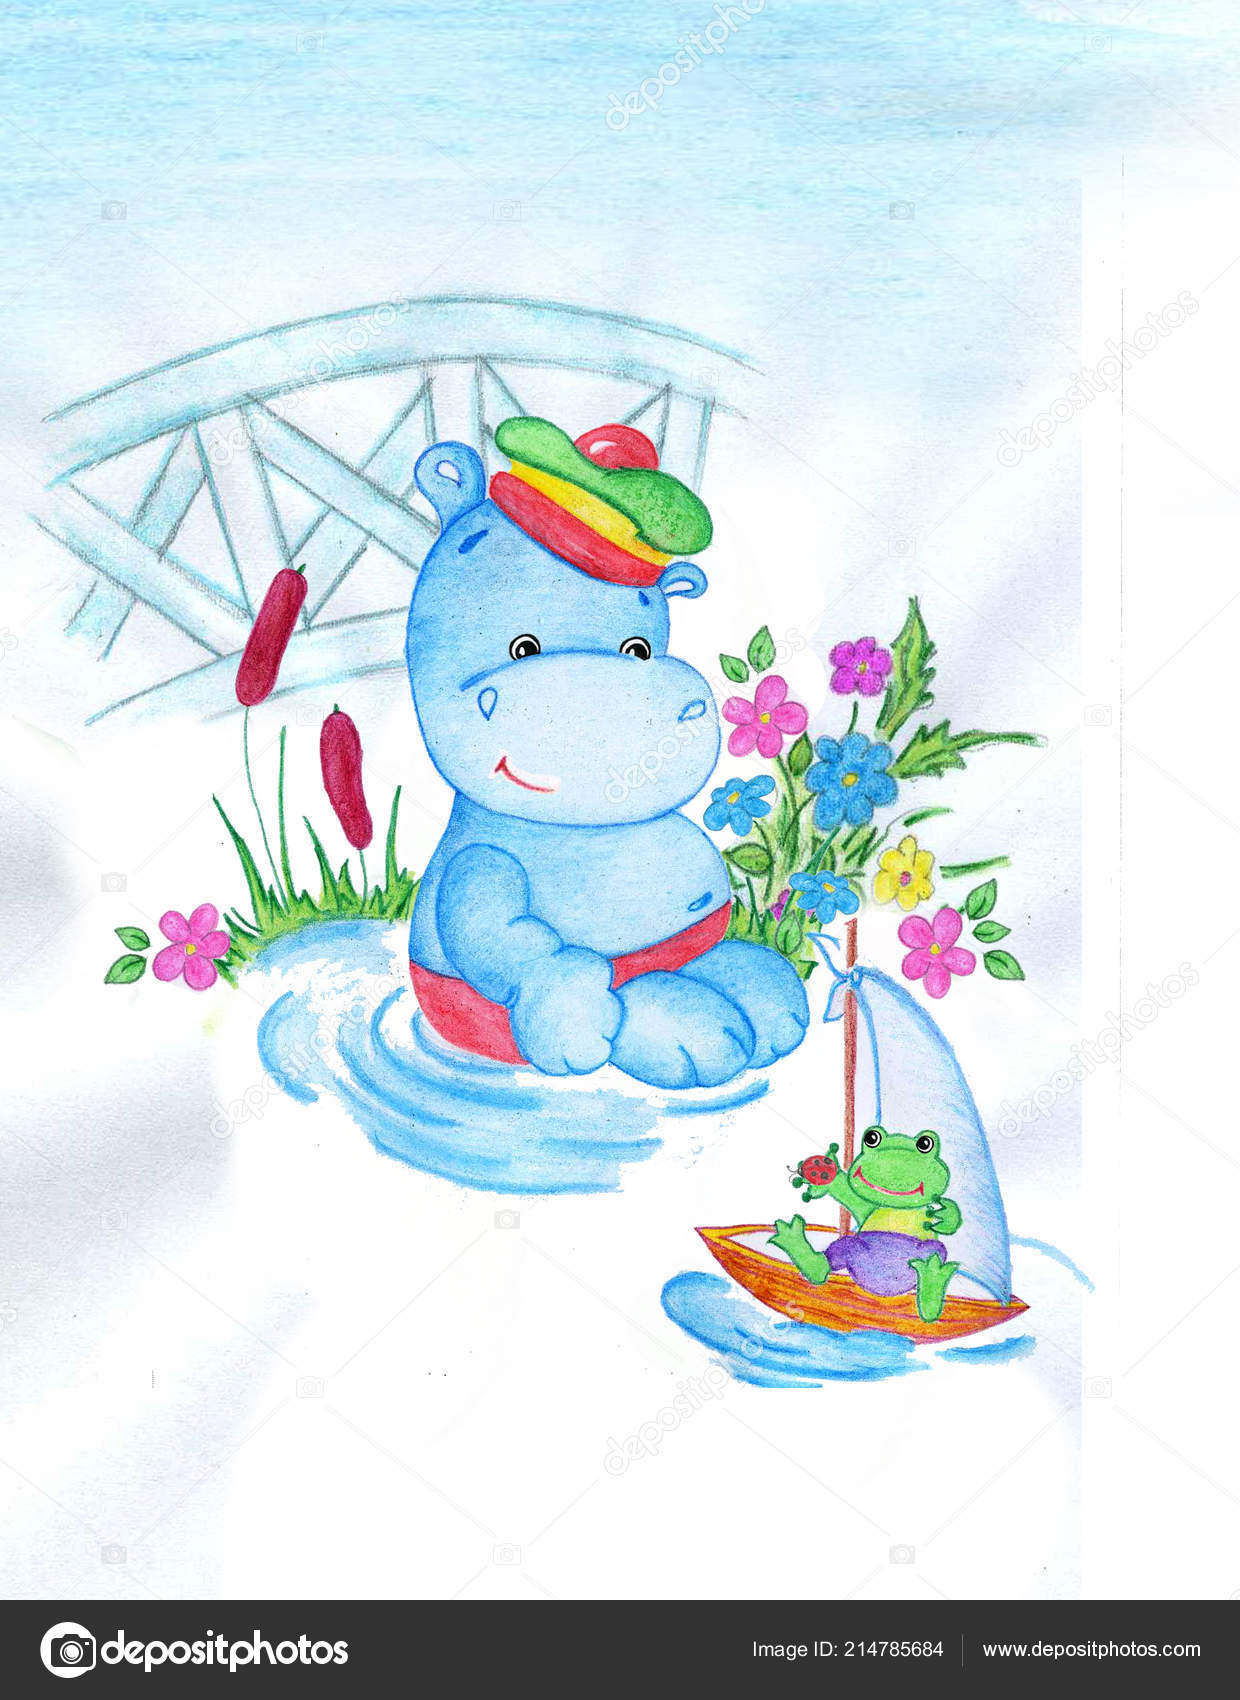 Ute Little Hippo With A Frog Summer Small River Glade Perfect For Kids Print Birthday Cards Design Books Invitations An Illustration Is Drawn In